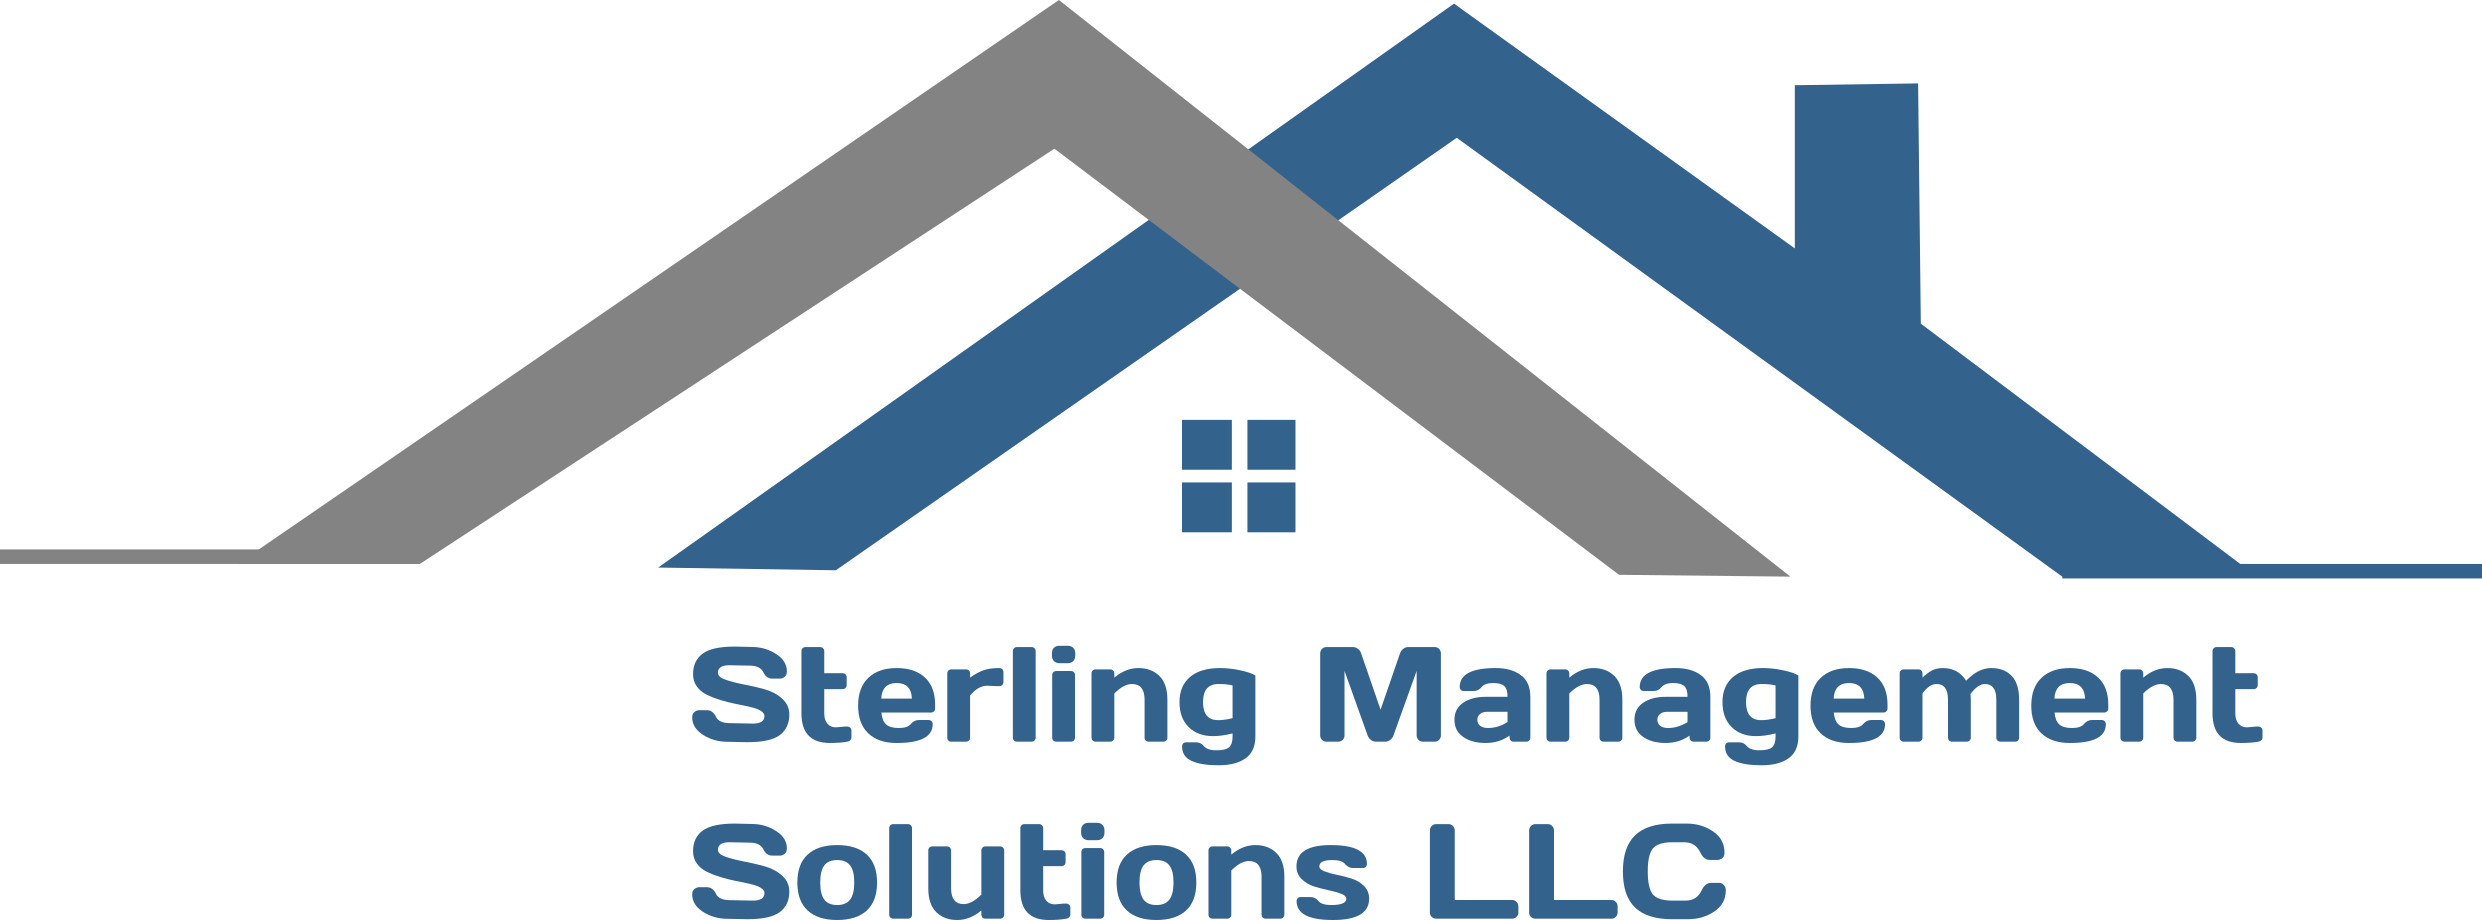 Sterling Management Solutions, LLC